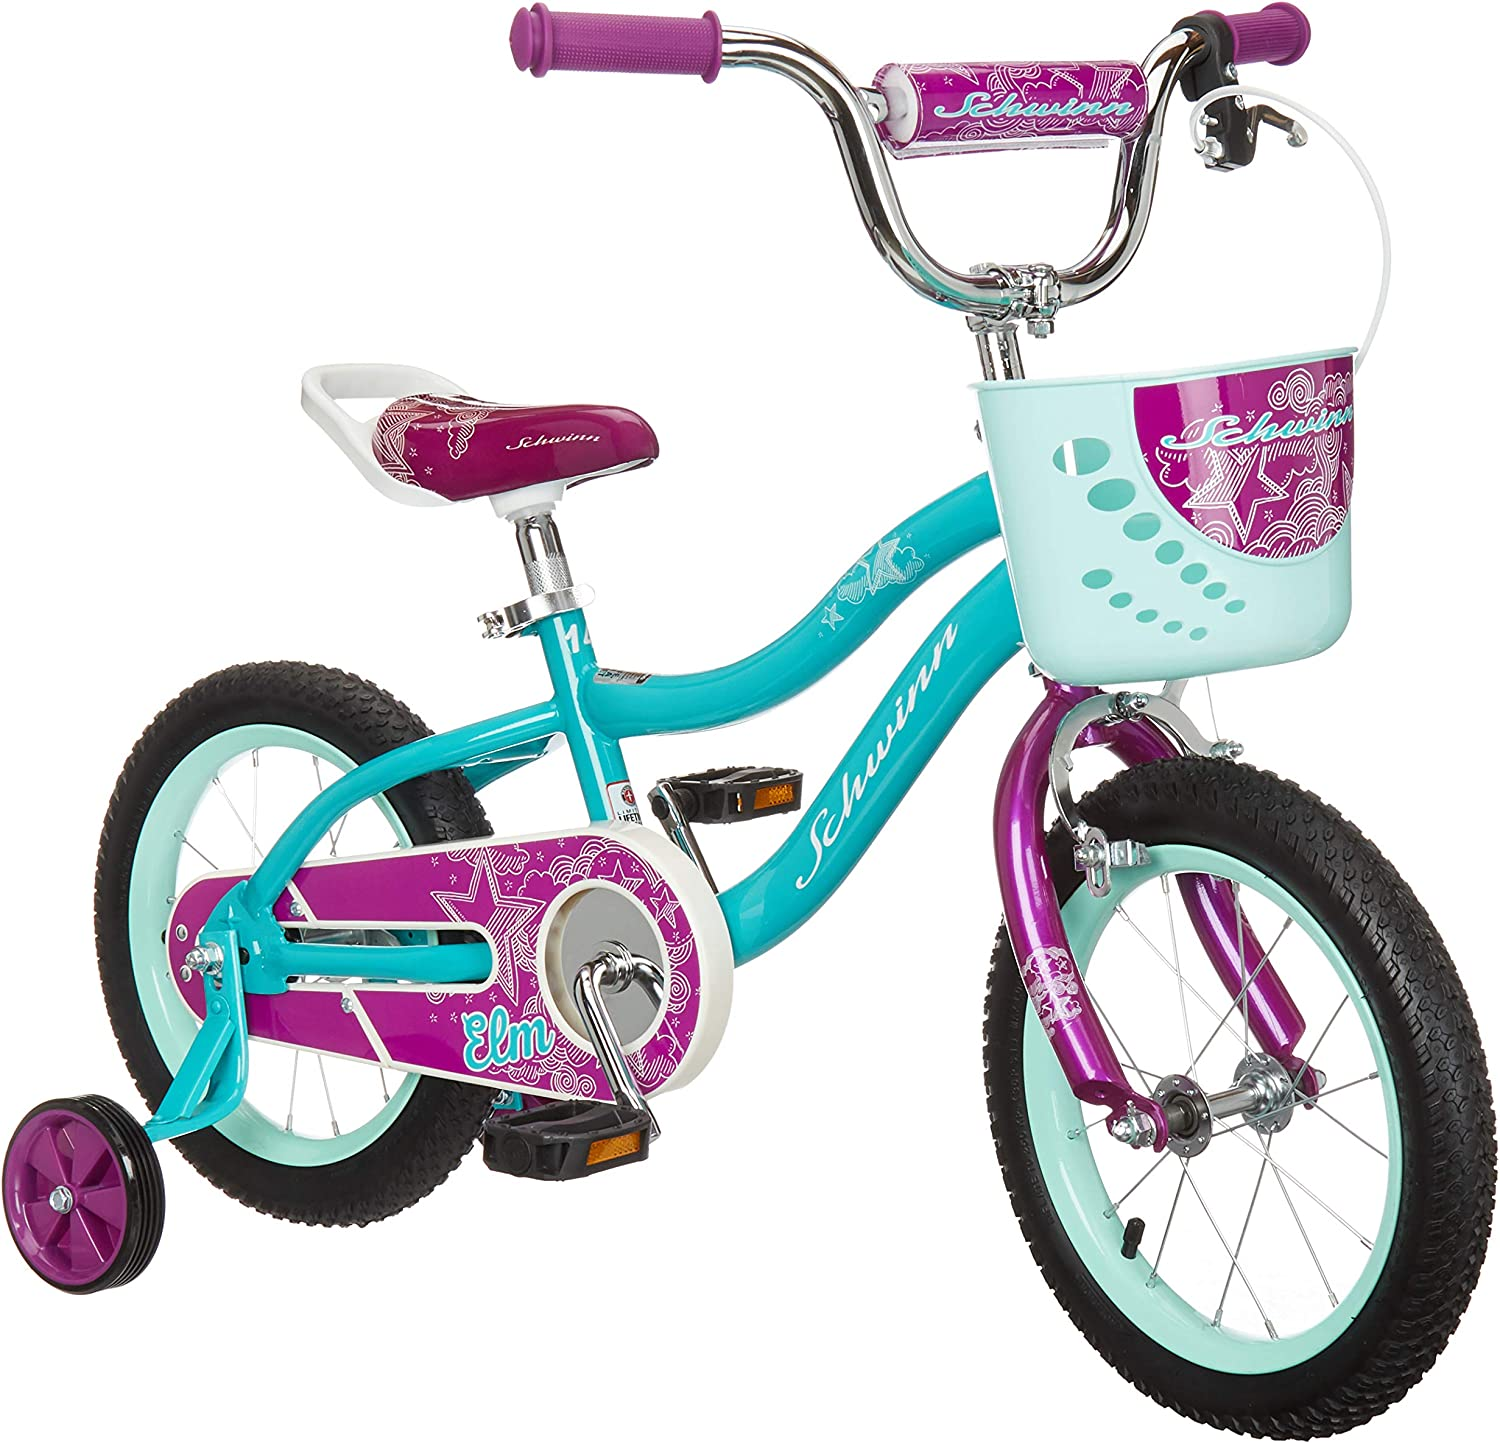 Bicycle - great outdoor toy for kids